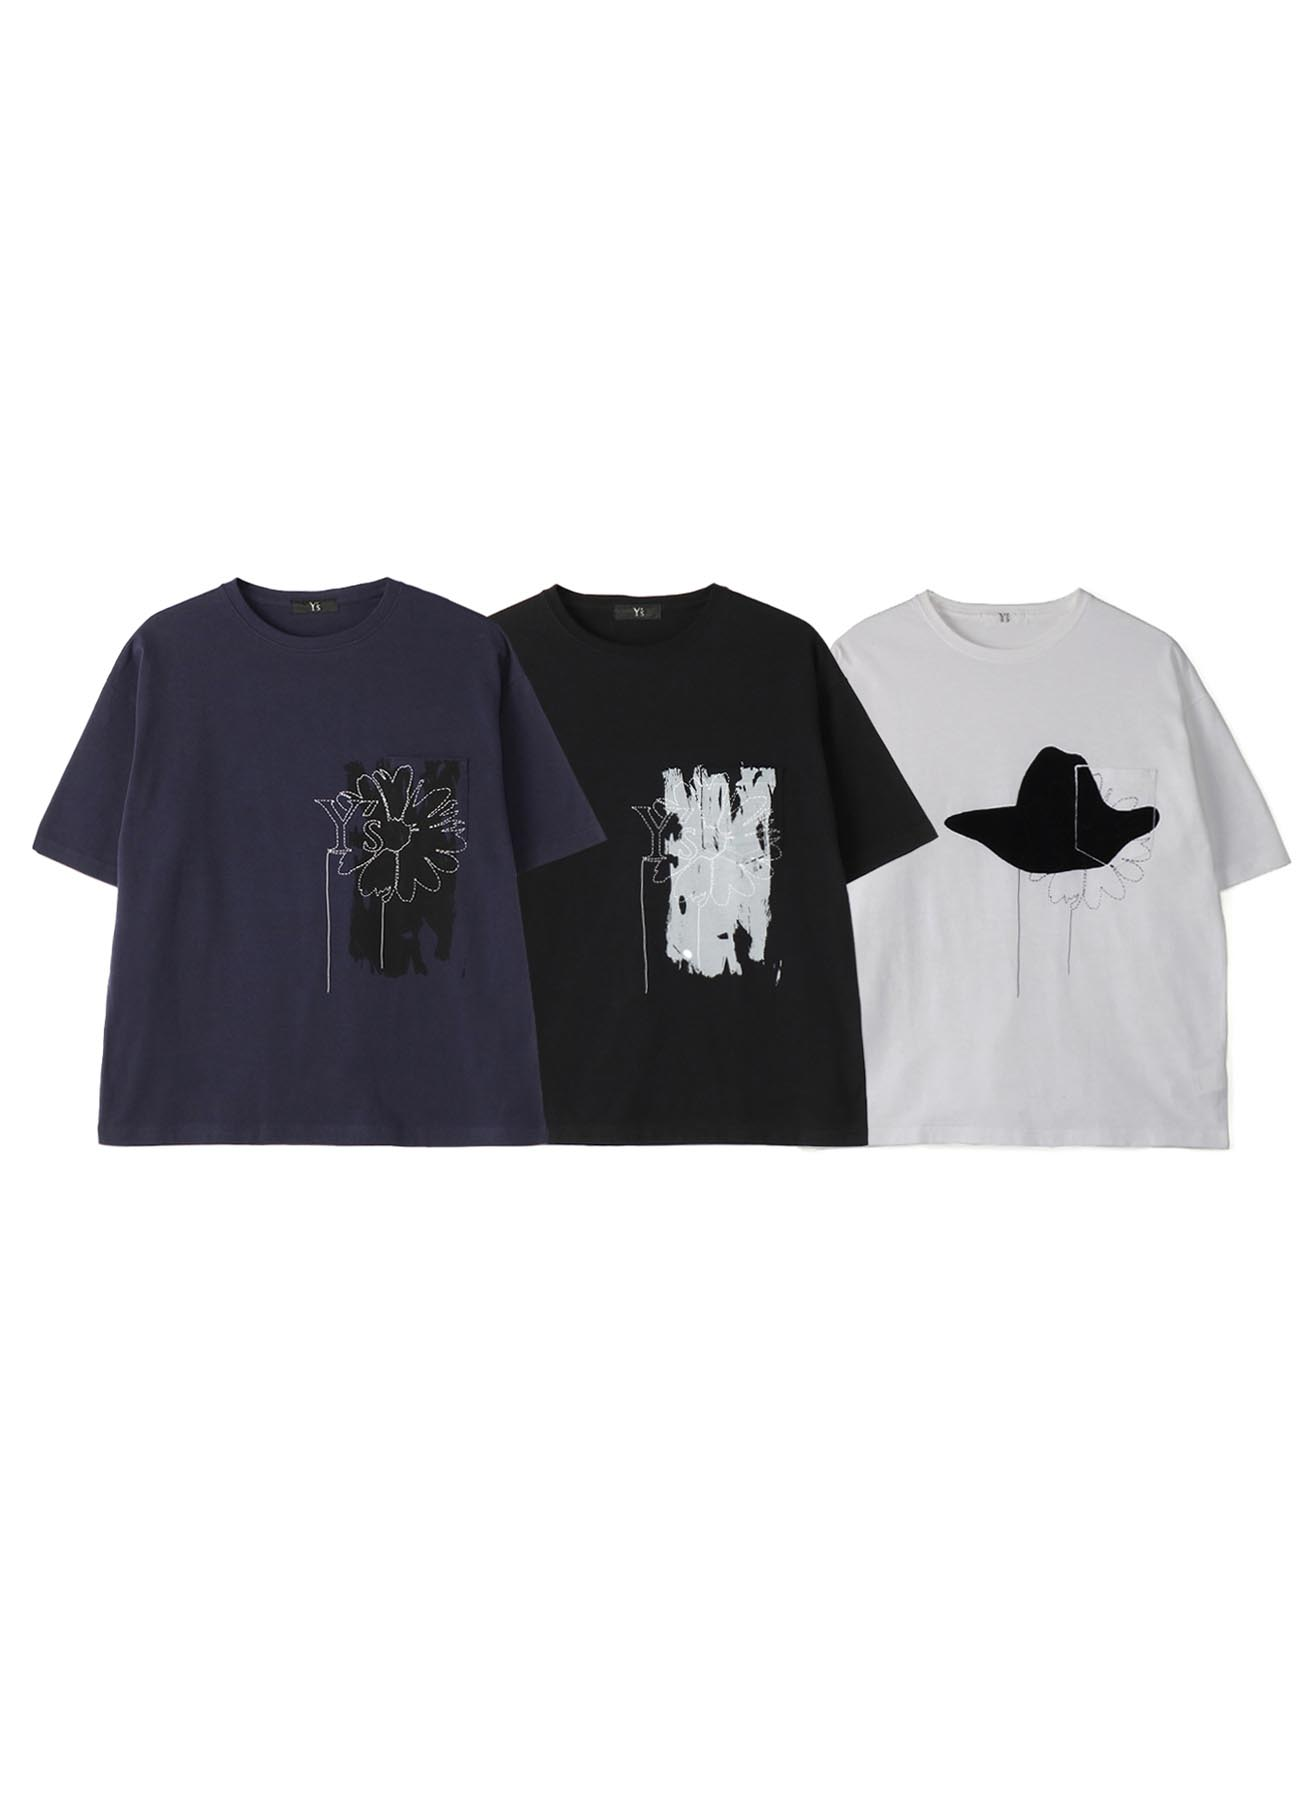 【Online Limited product】 Y's Floral T-shirt